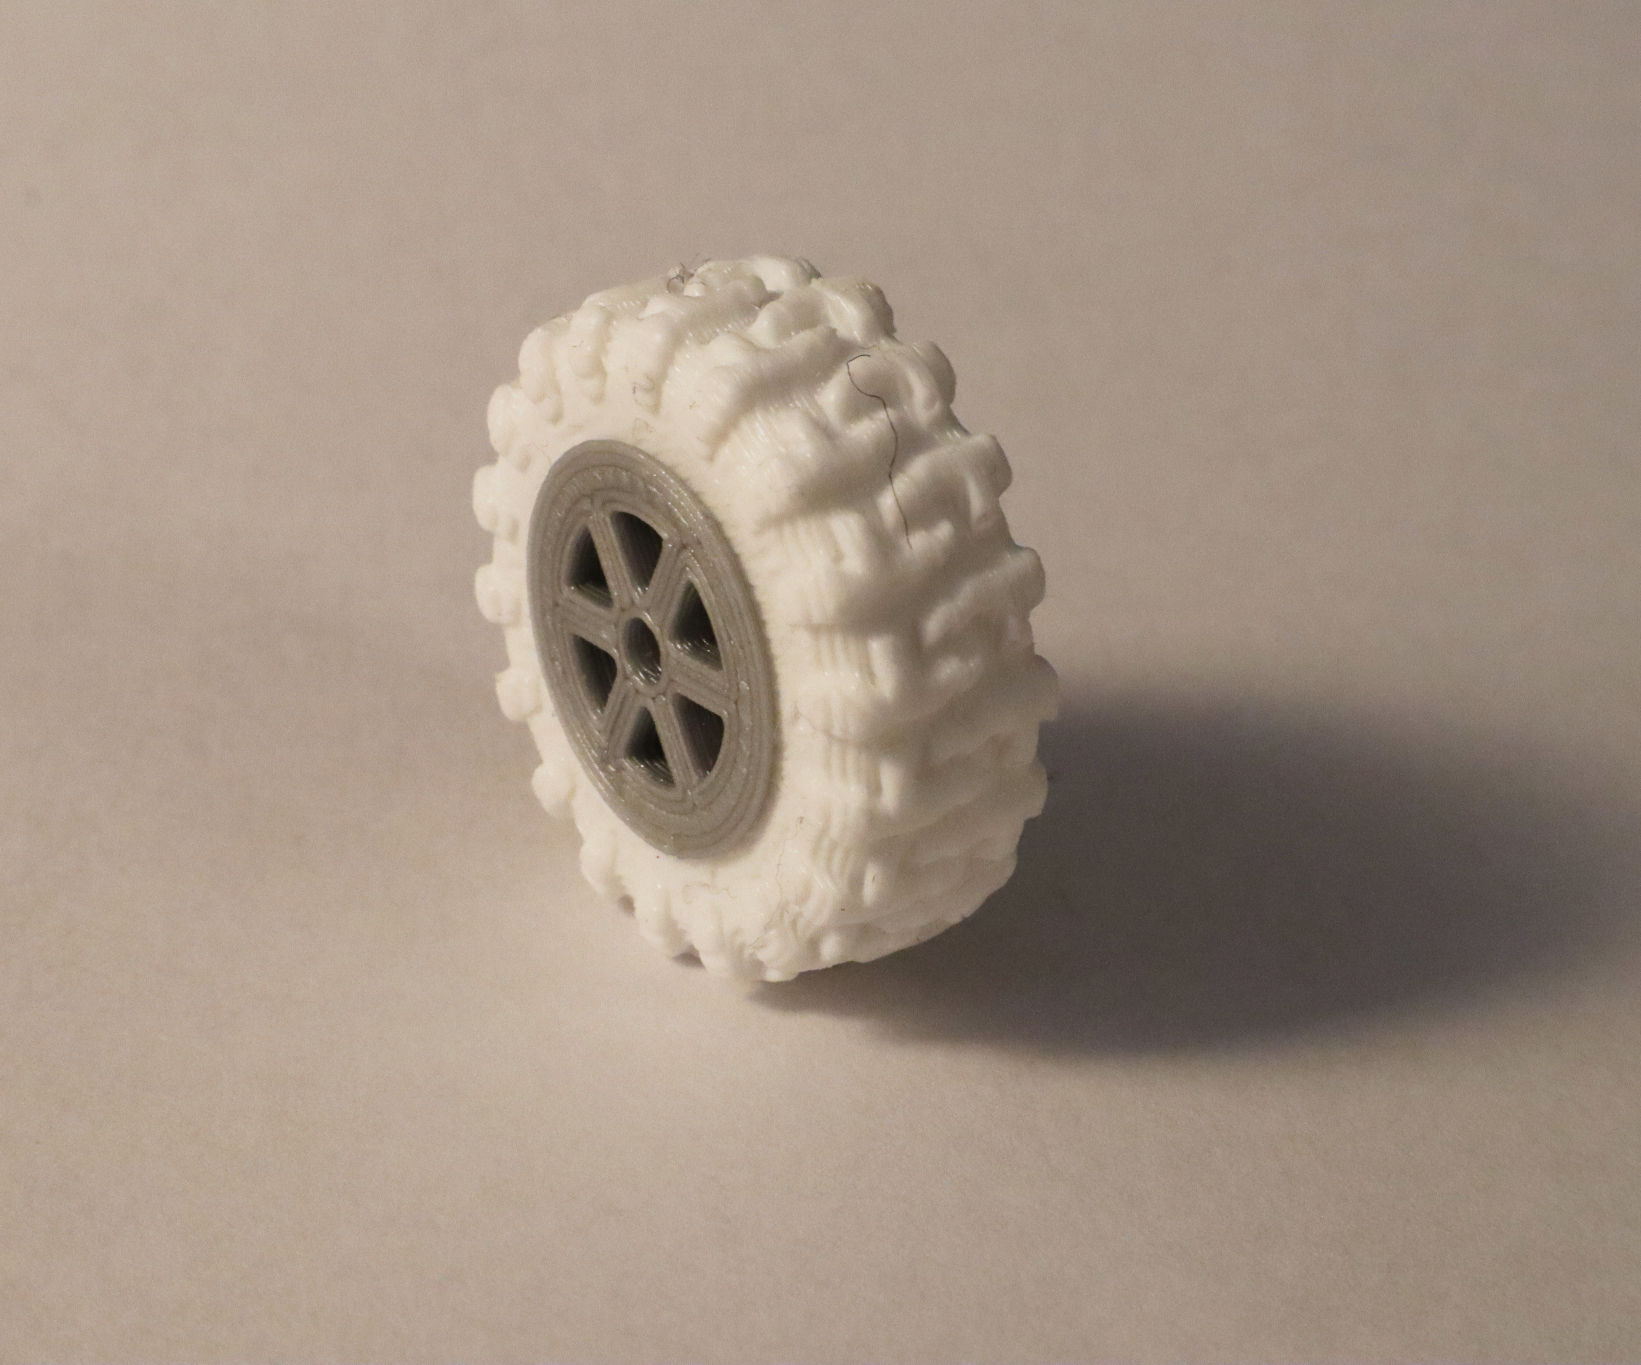 Grippy, Hollow, Silicone Tires for Robots and RC